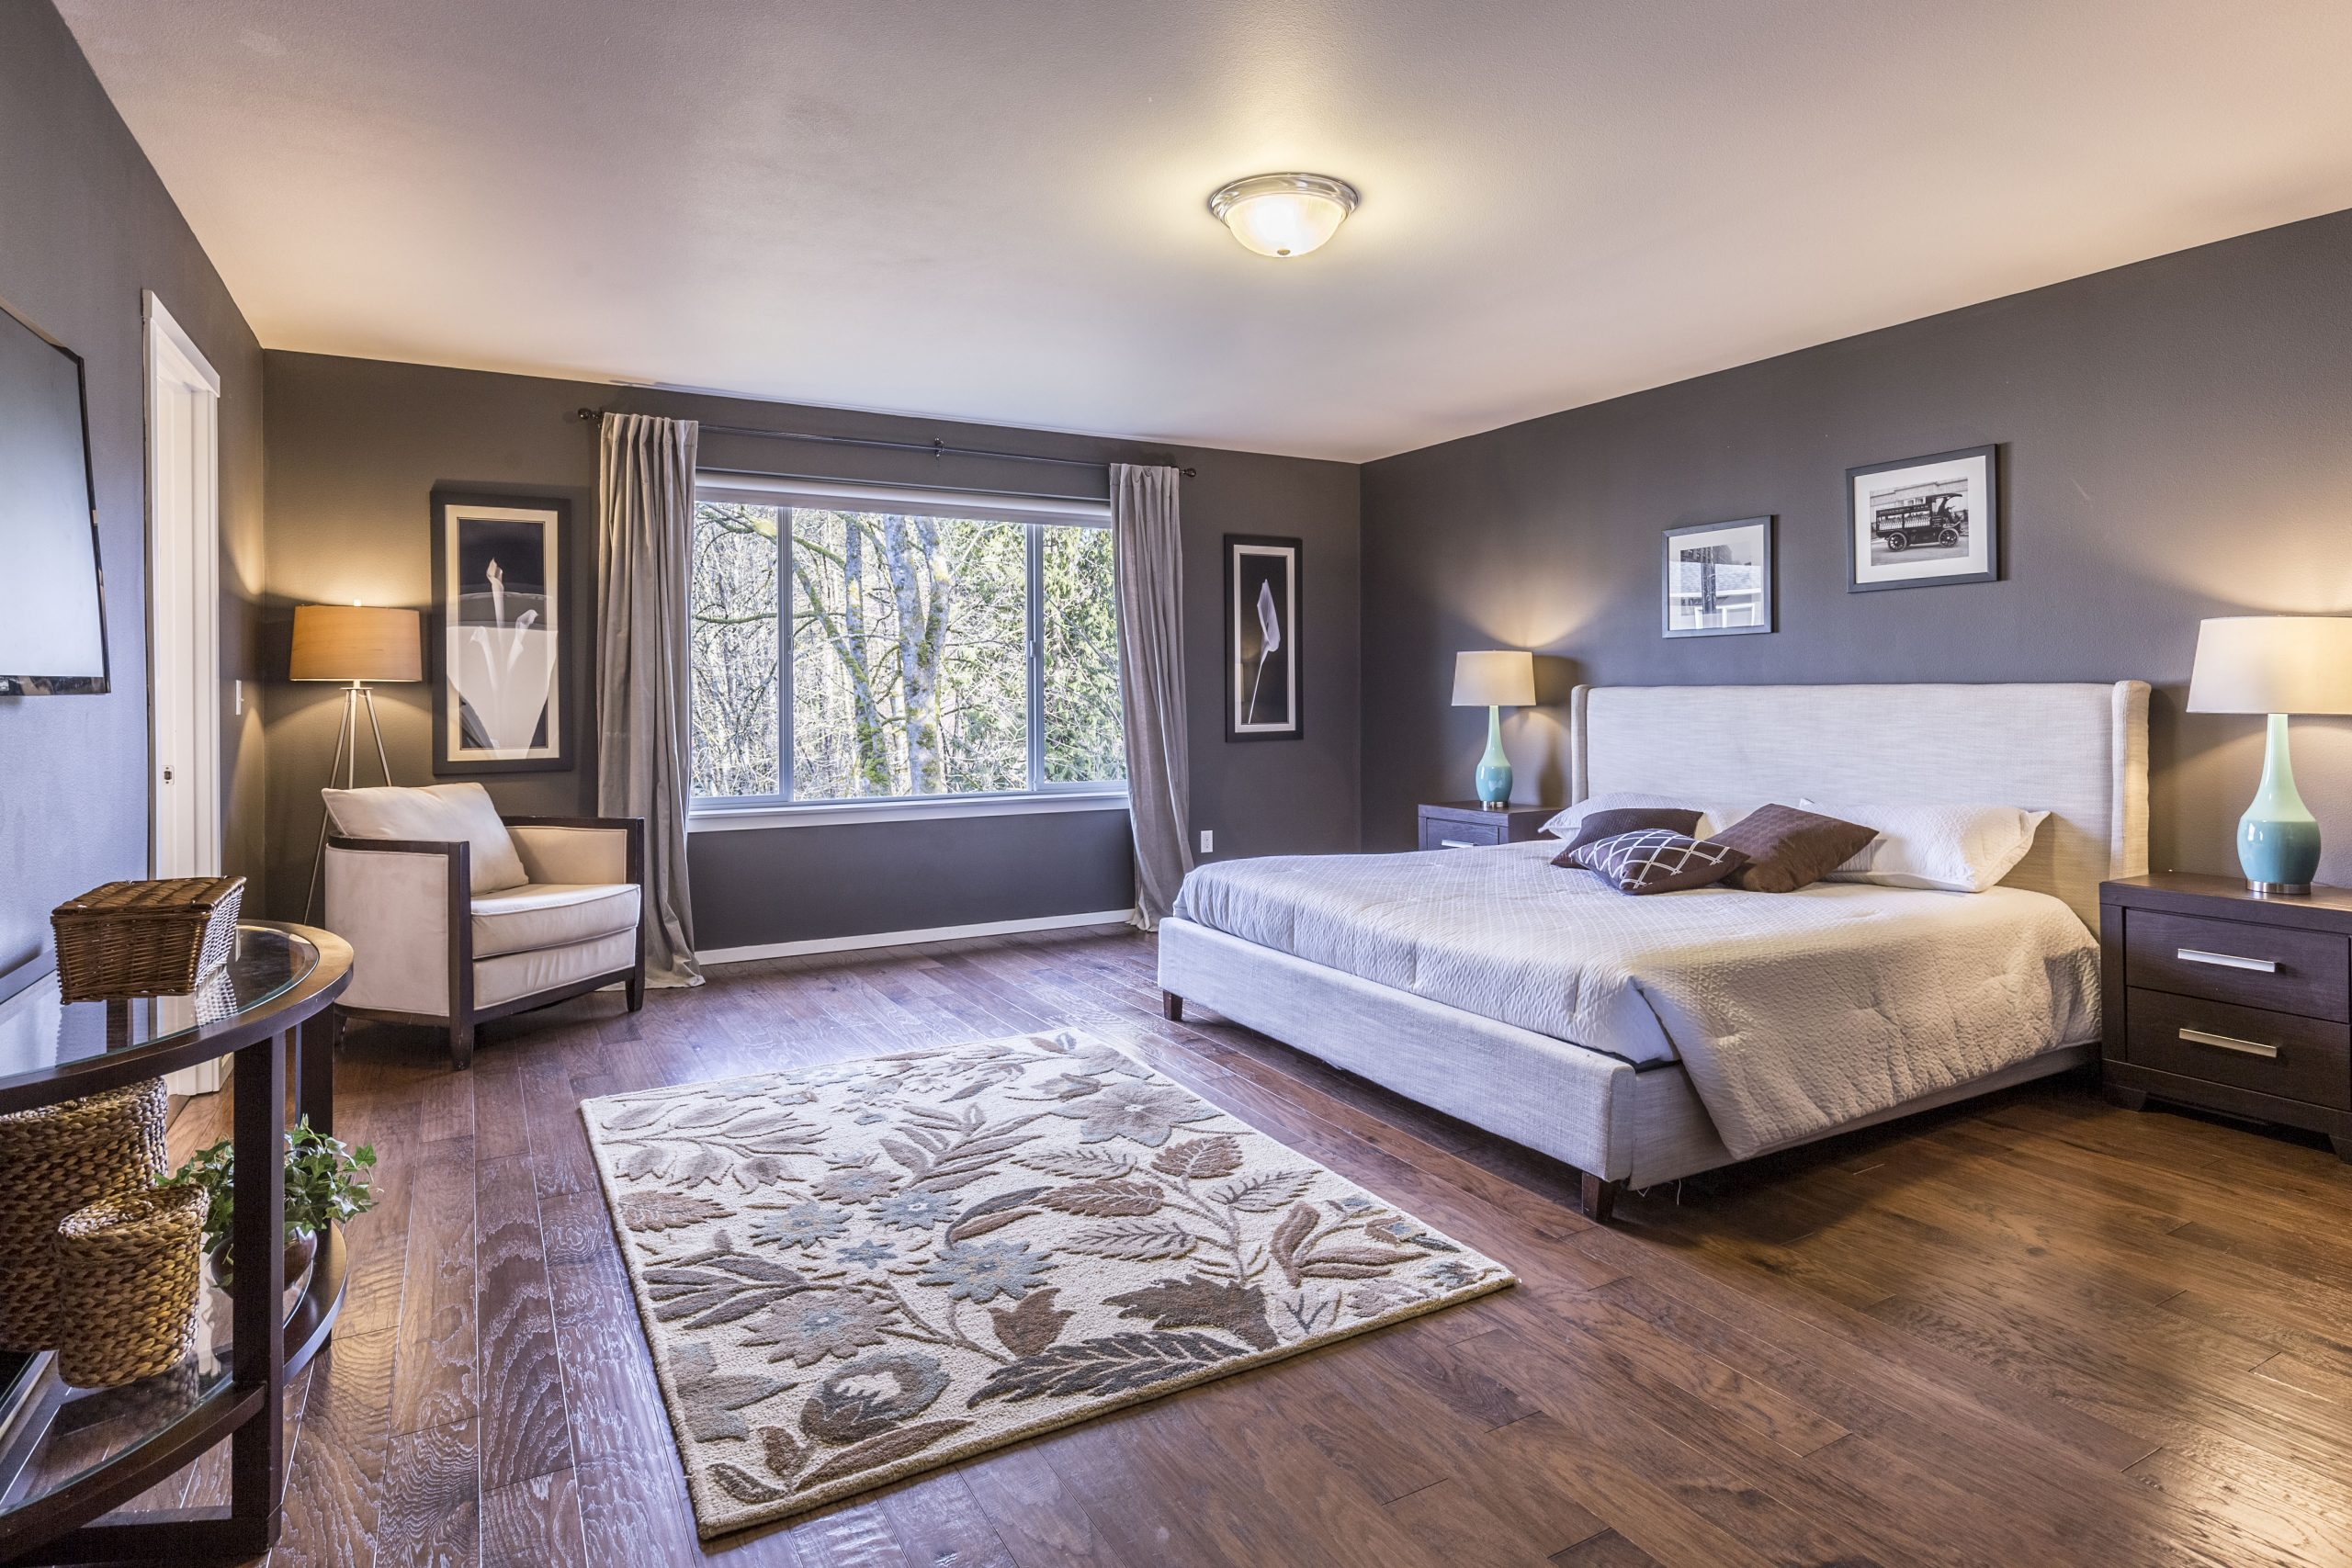 Master-bedroom-with-king-size-bed-and-hardwood-floor-scaled